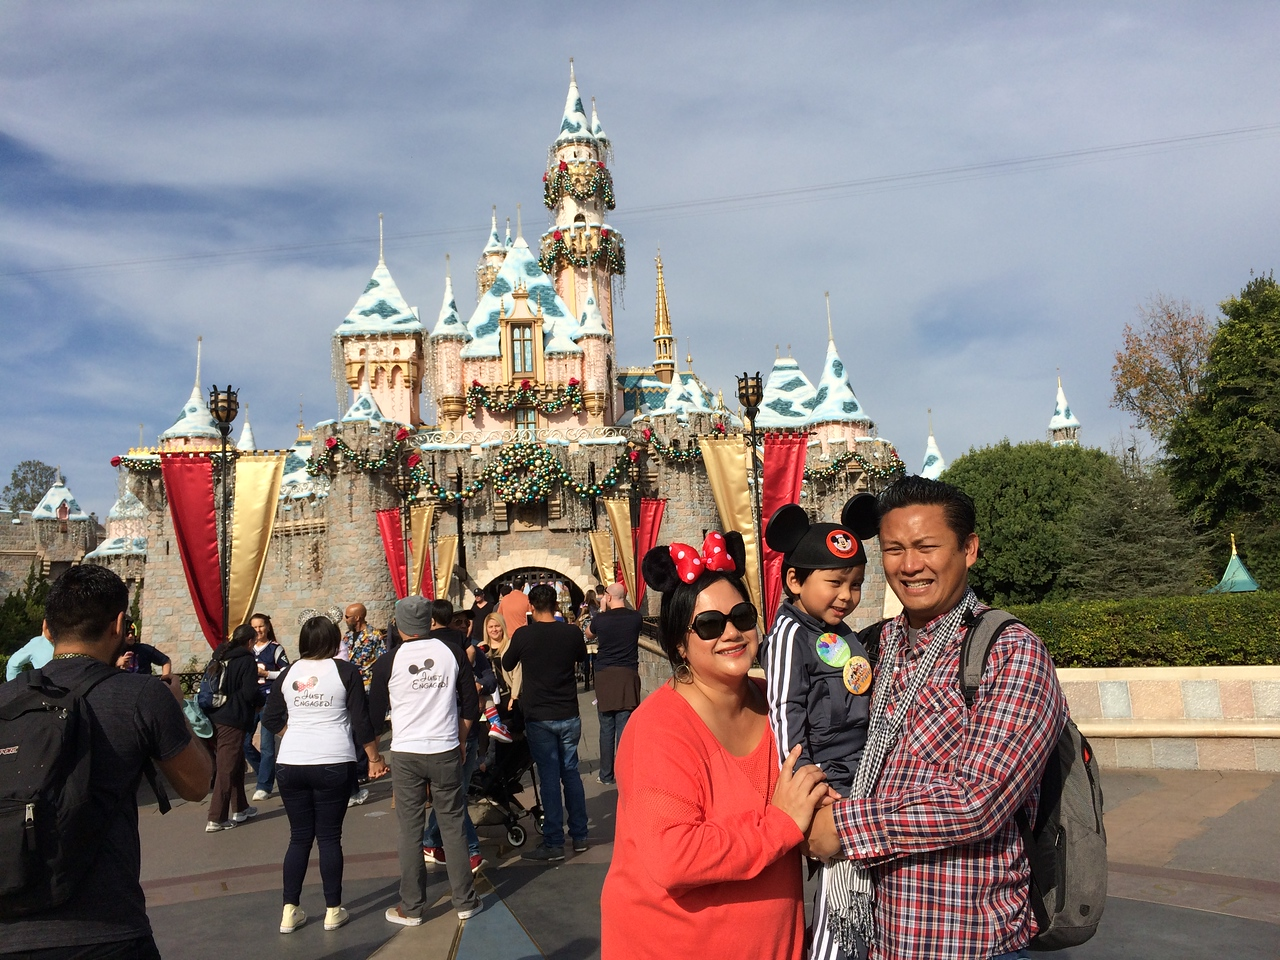 In front of Sleeping Beauty Castle.